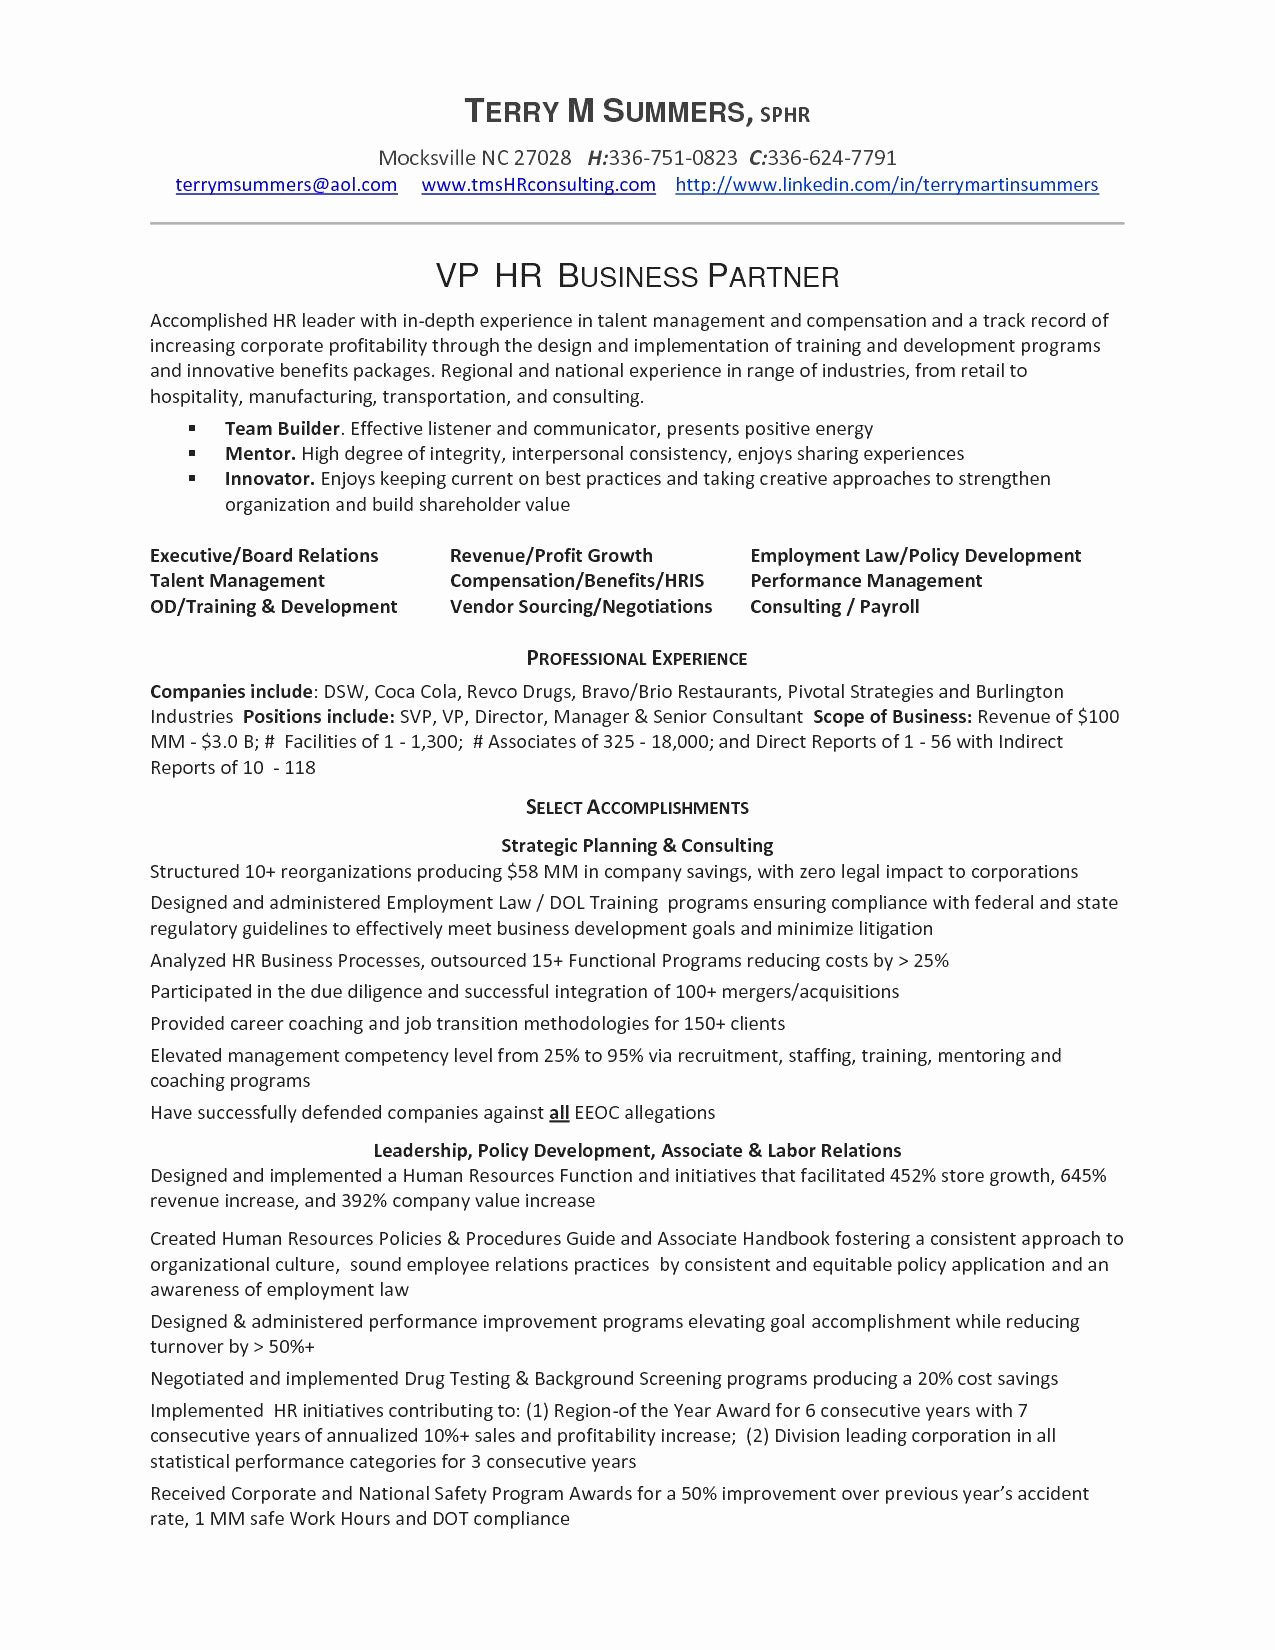 Product Marketing Manager Resume - Product Manager Resume Luxury 20 Product Marketing Manager Resume